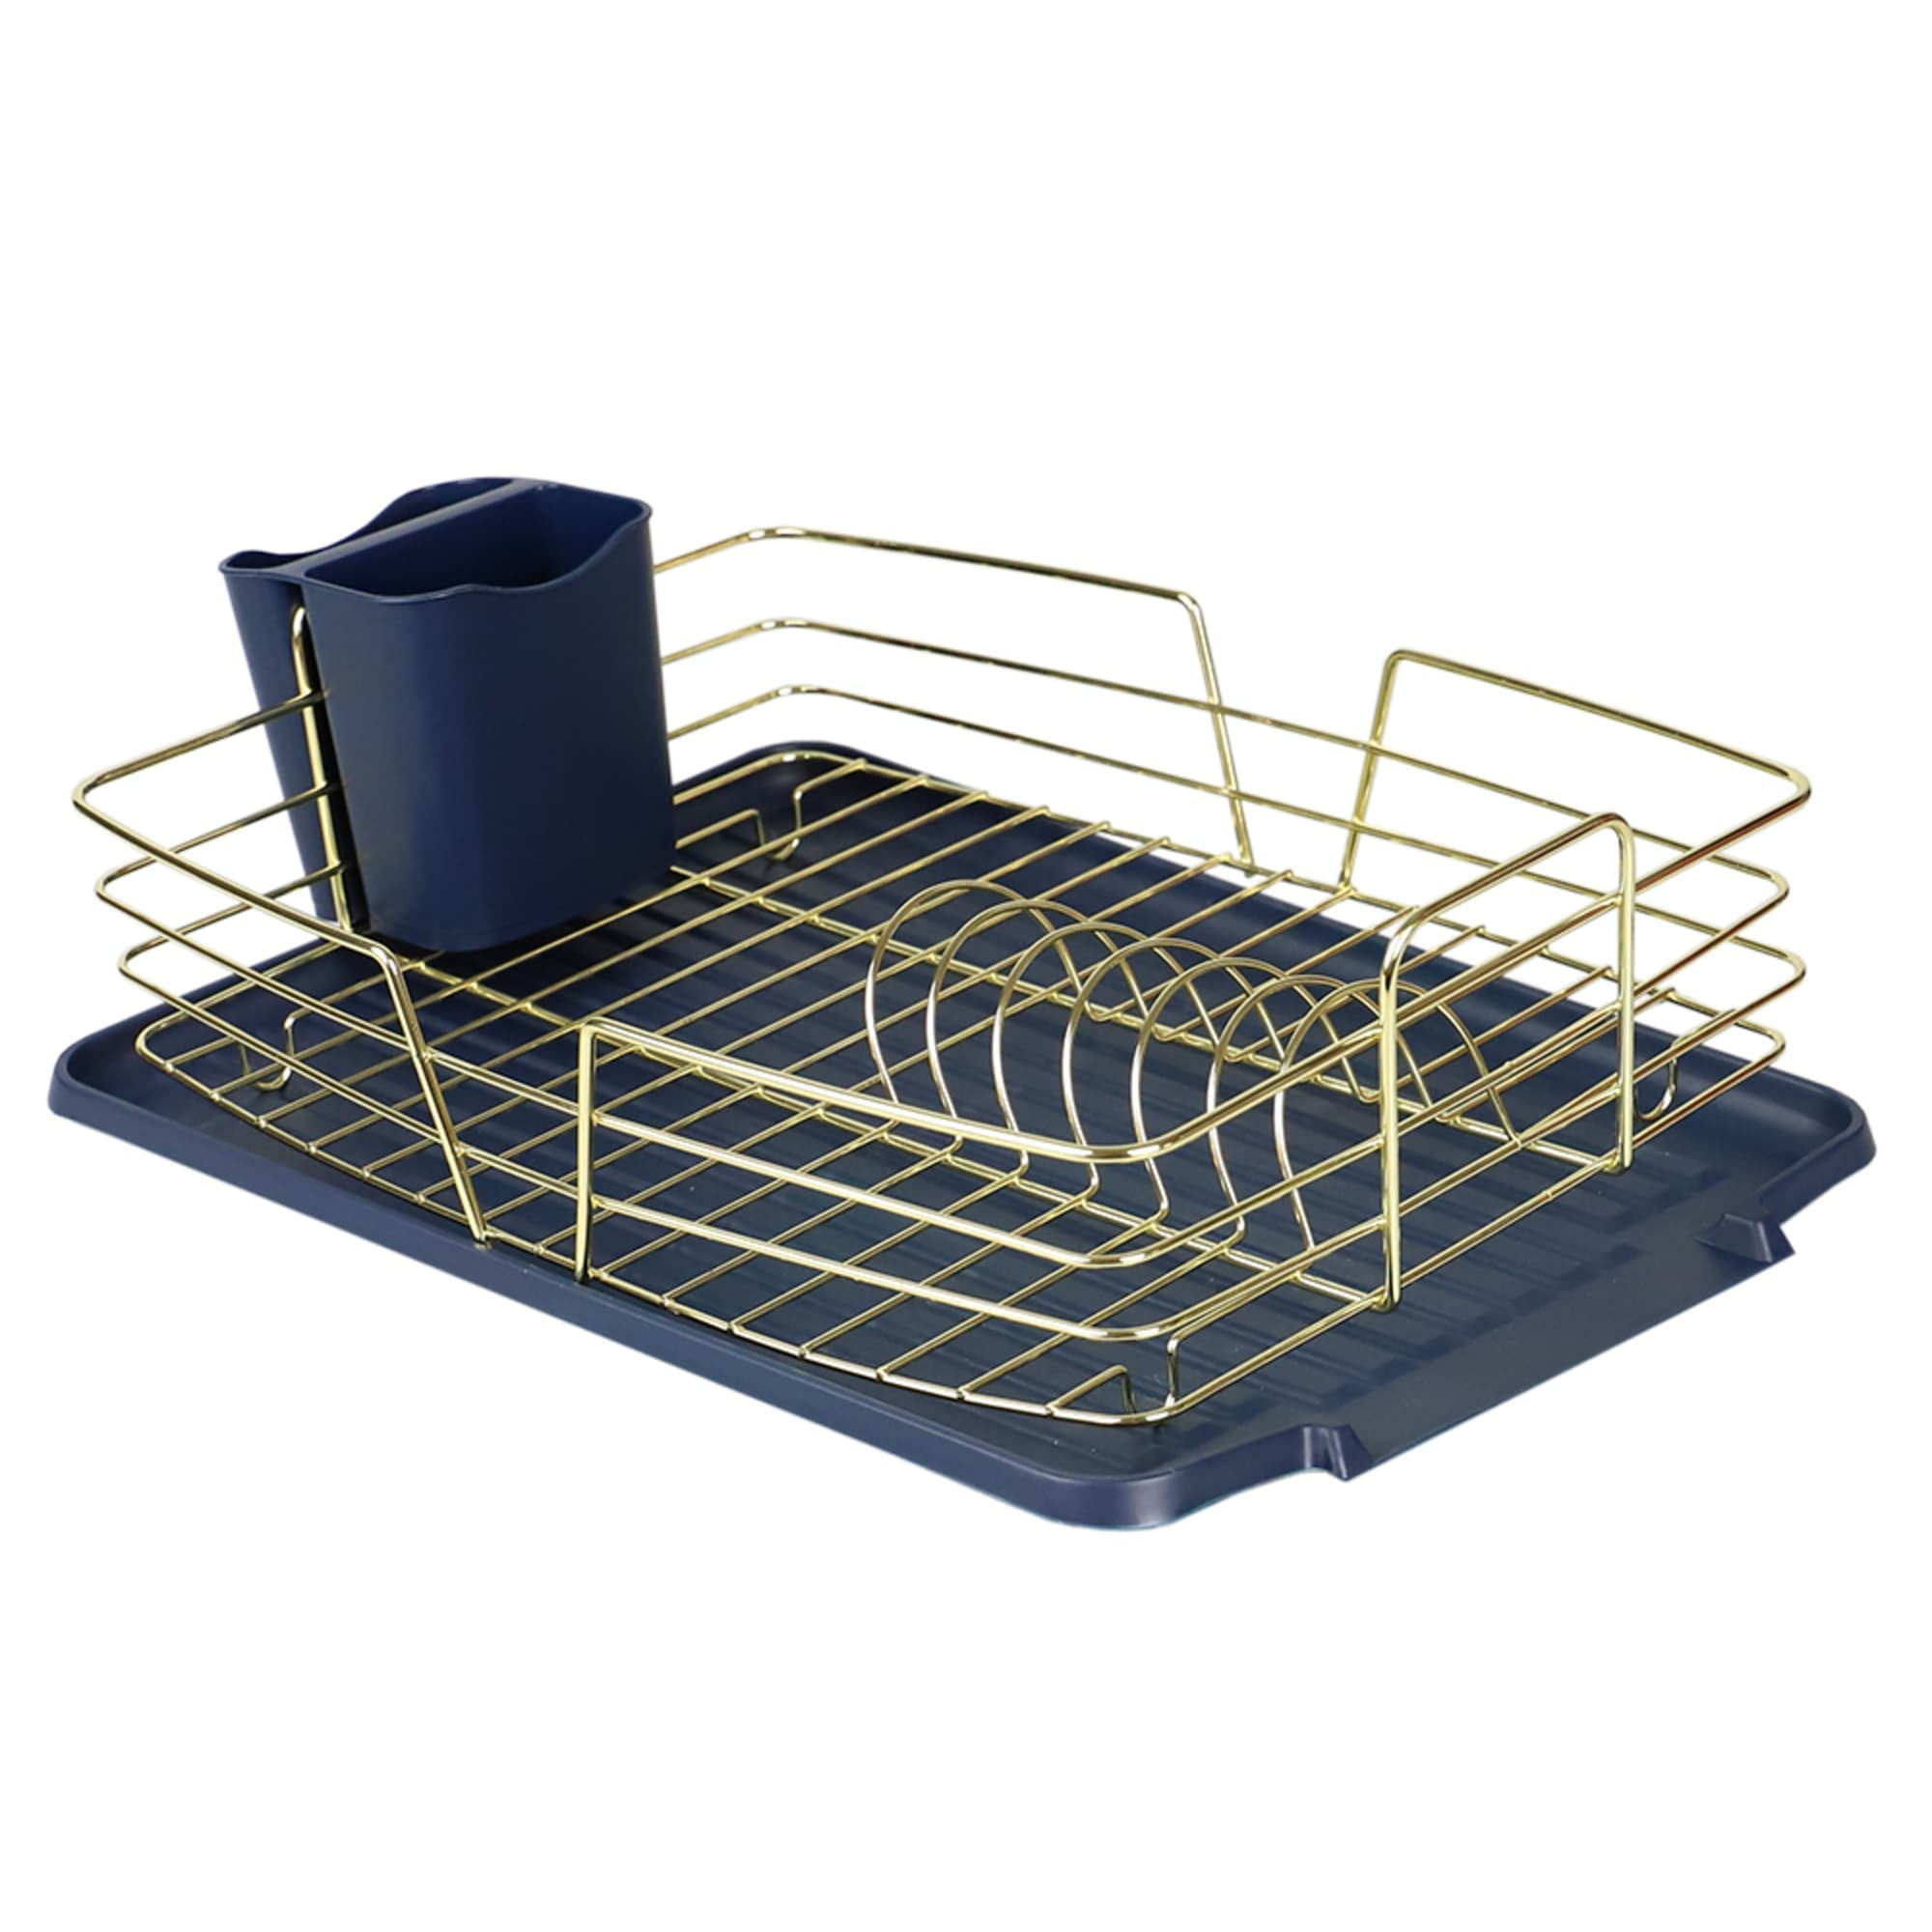 Michael Graves Design Deluxe Dish Rack with Gold Finish Wire and Removable Dual Compartment Utensil Holder, Navy Blue/Gold